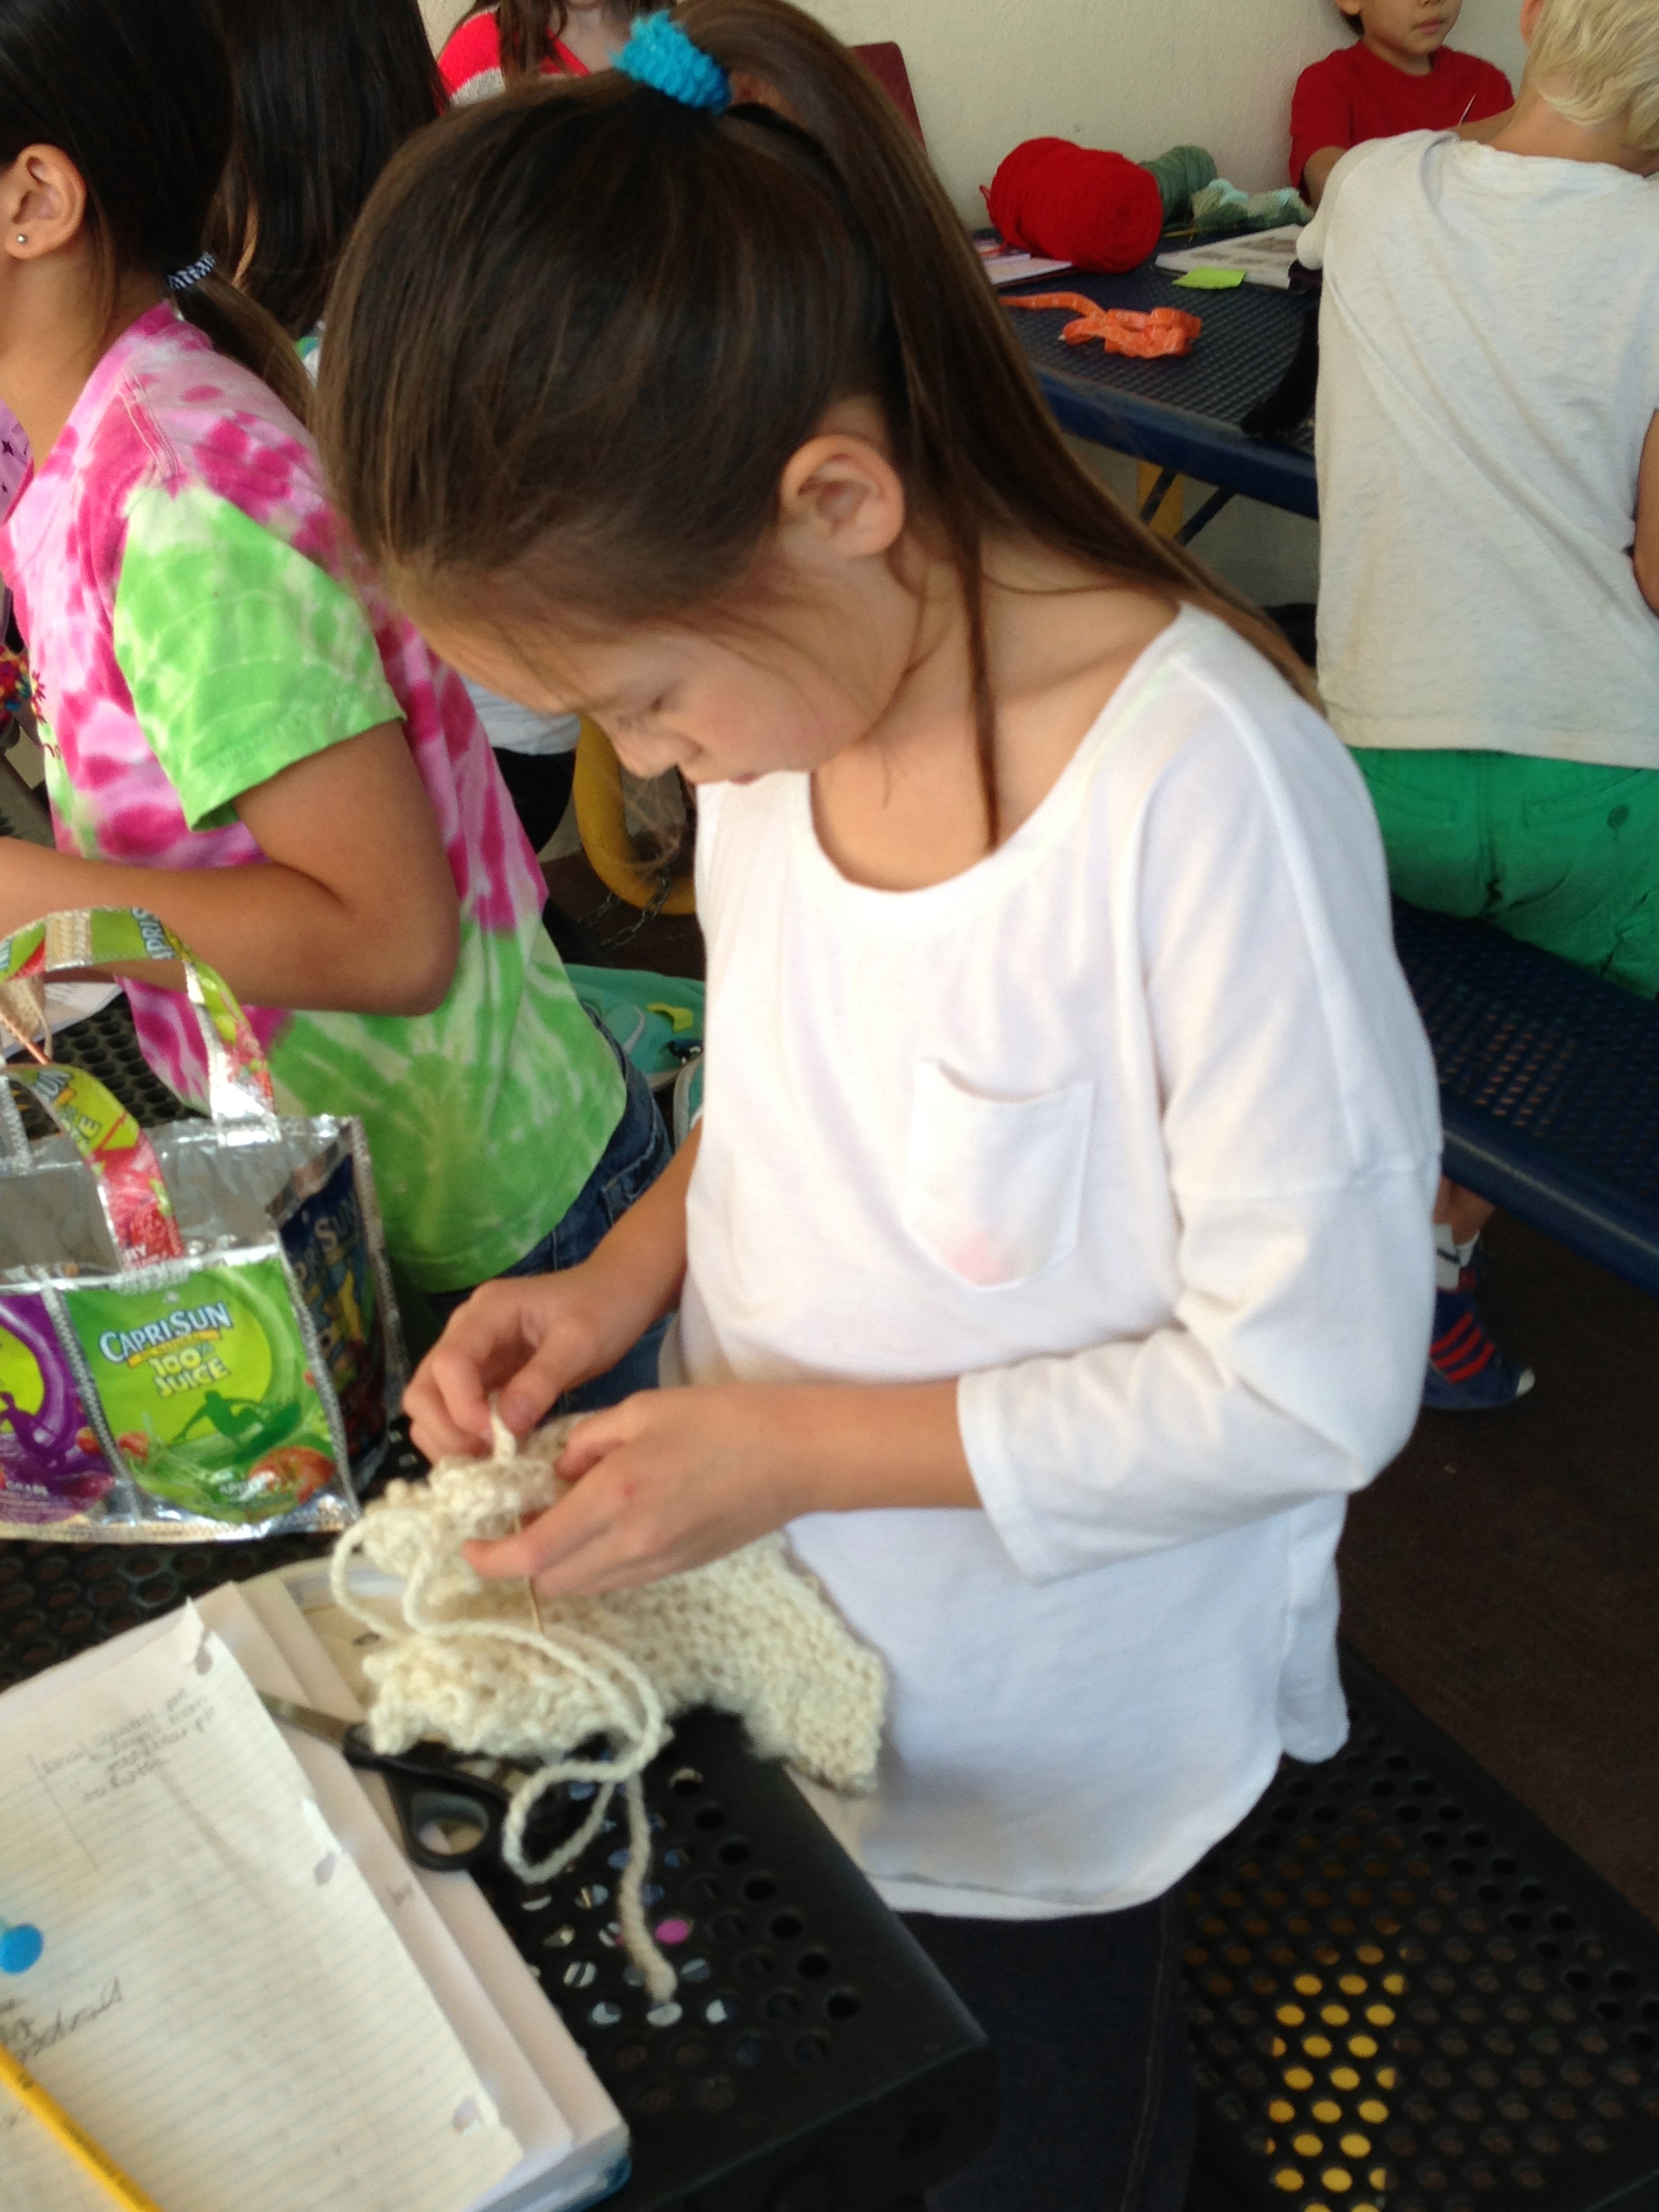 2nd grader sewing her project together.